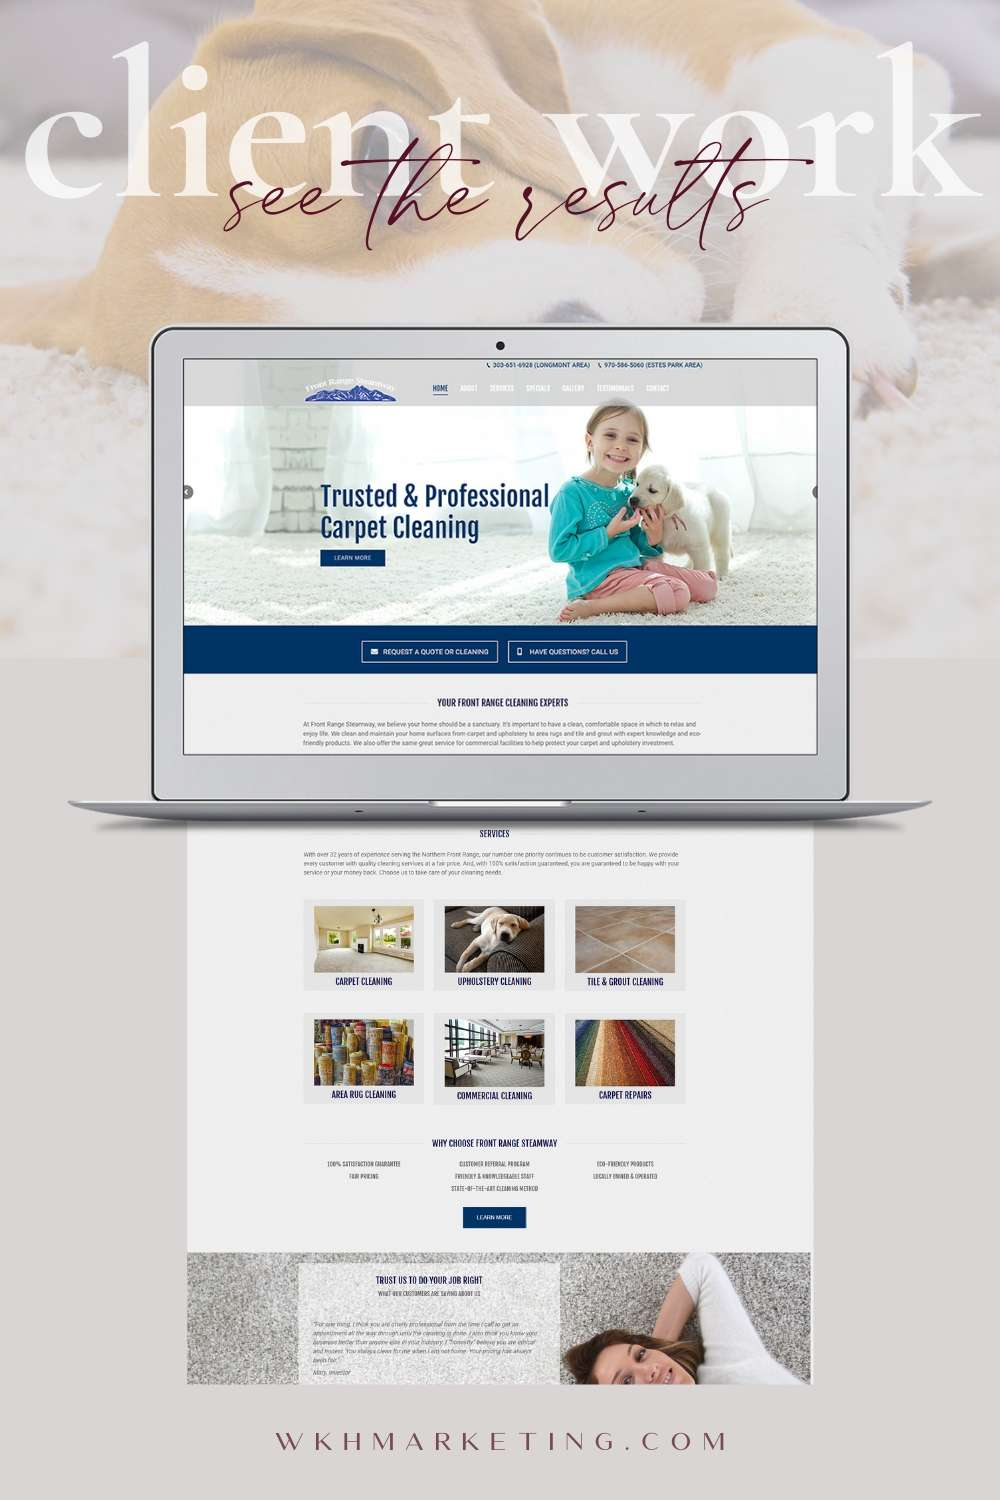 Web Design For Carpet Cleaning Business